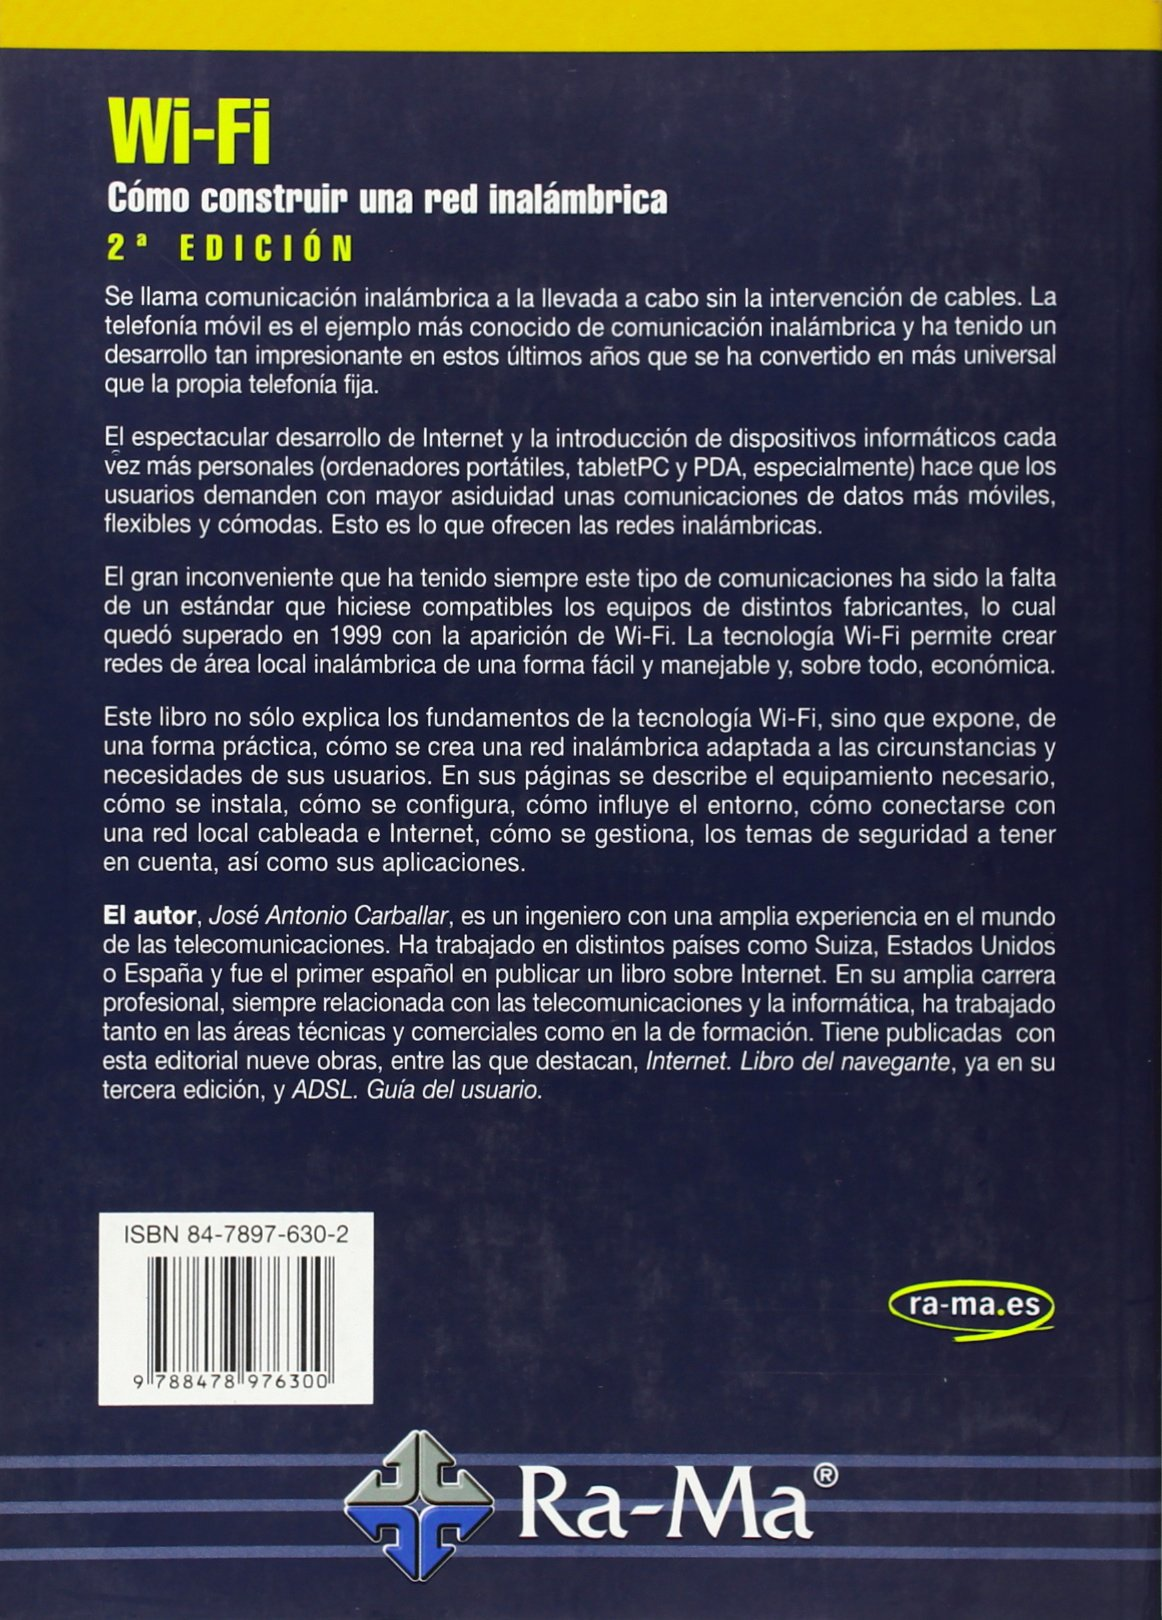 Wi-Fi. Cómo construir una red inalámbrica, 2ª edición.: José A. Carballar Falcón: 9788478976300: Amazon.com: Books